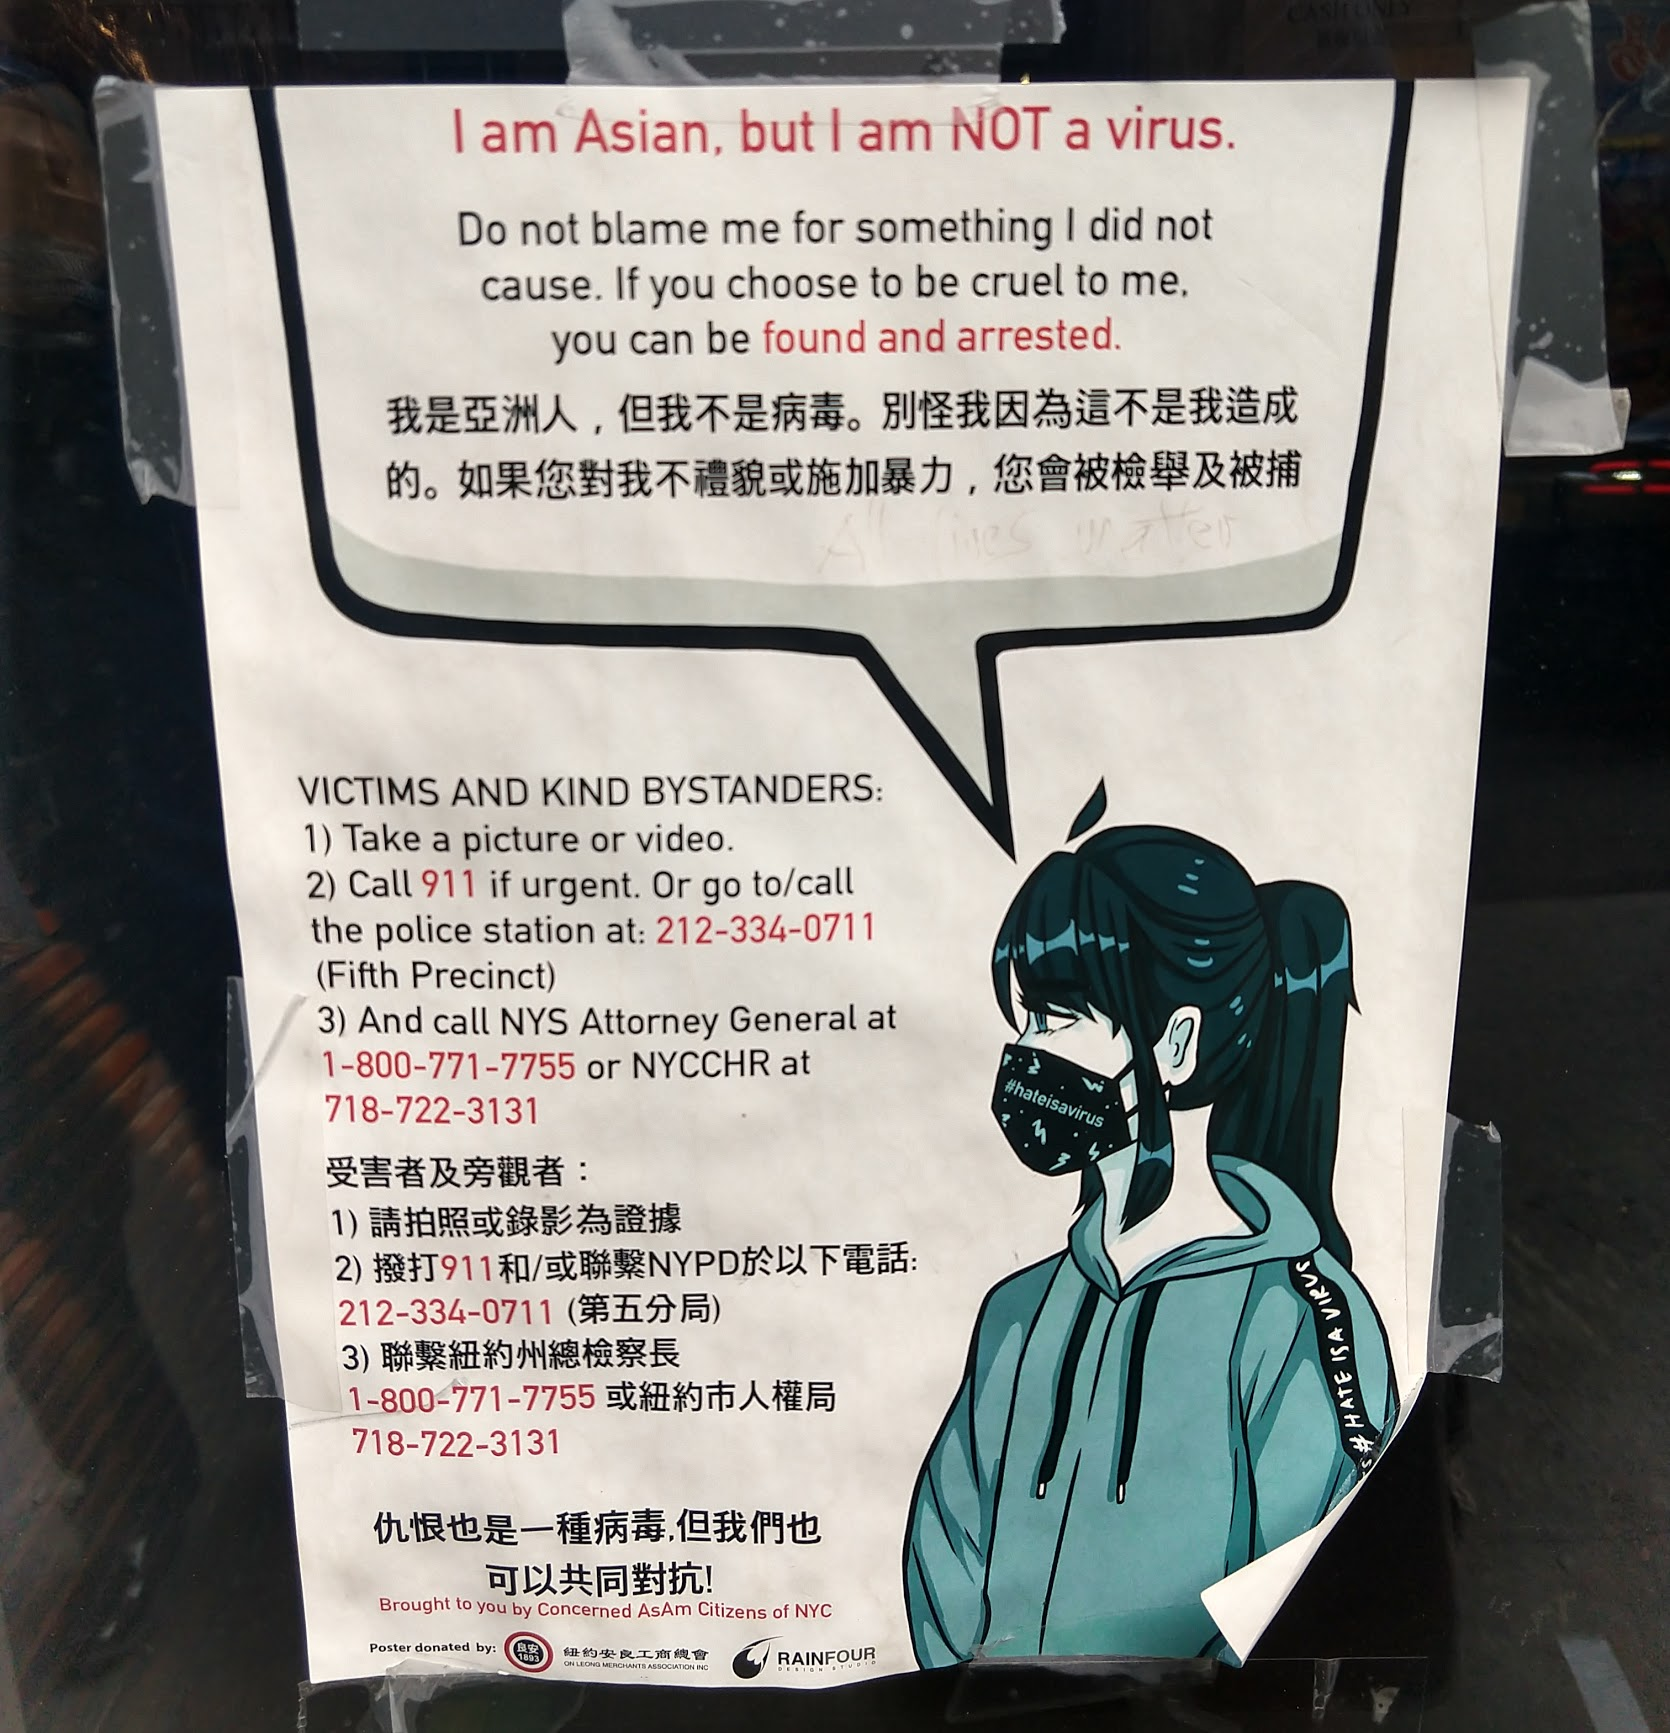 """Image of Asian avatar with the message """"I am Asian, but I am not a virus"""""""